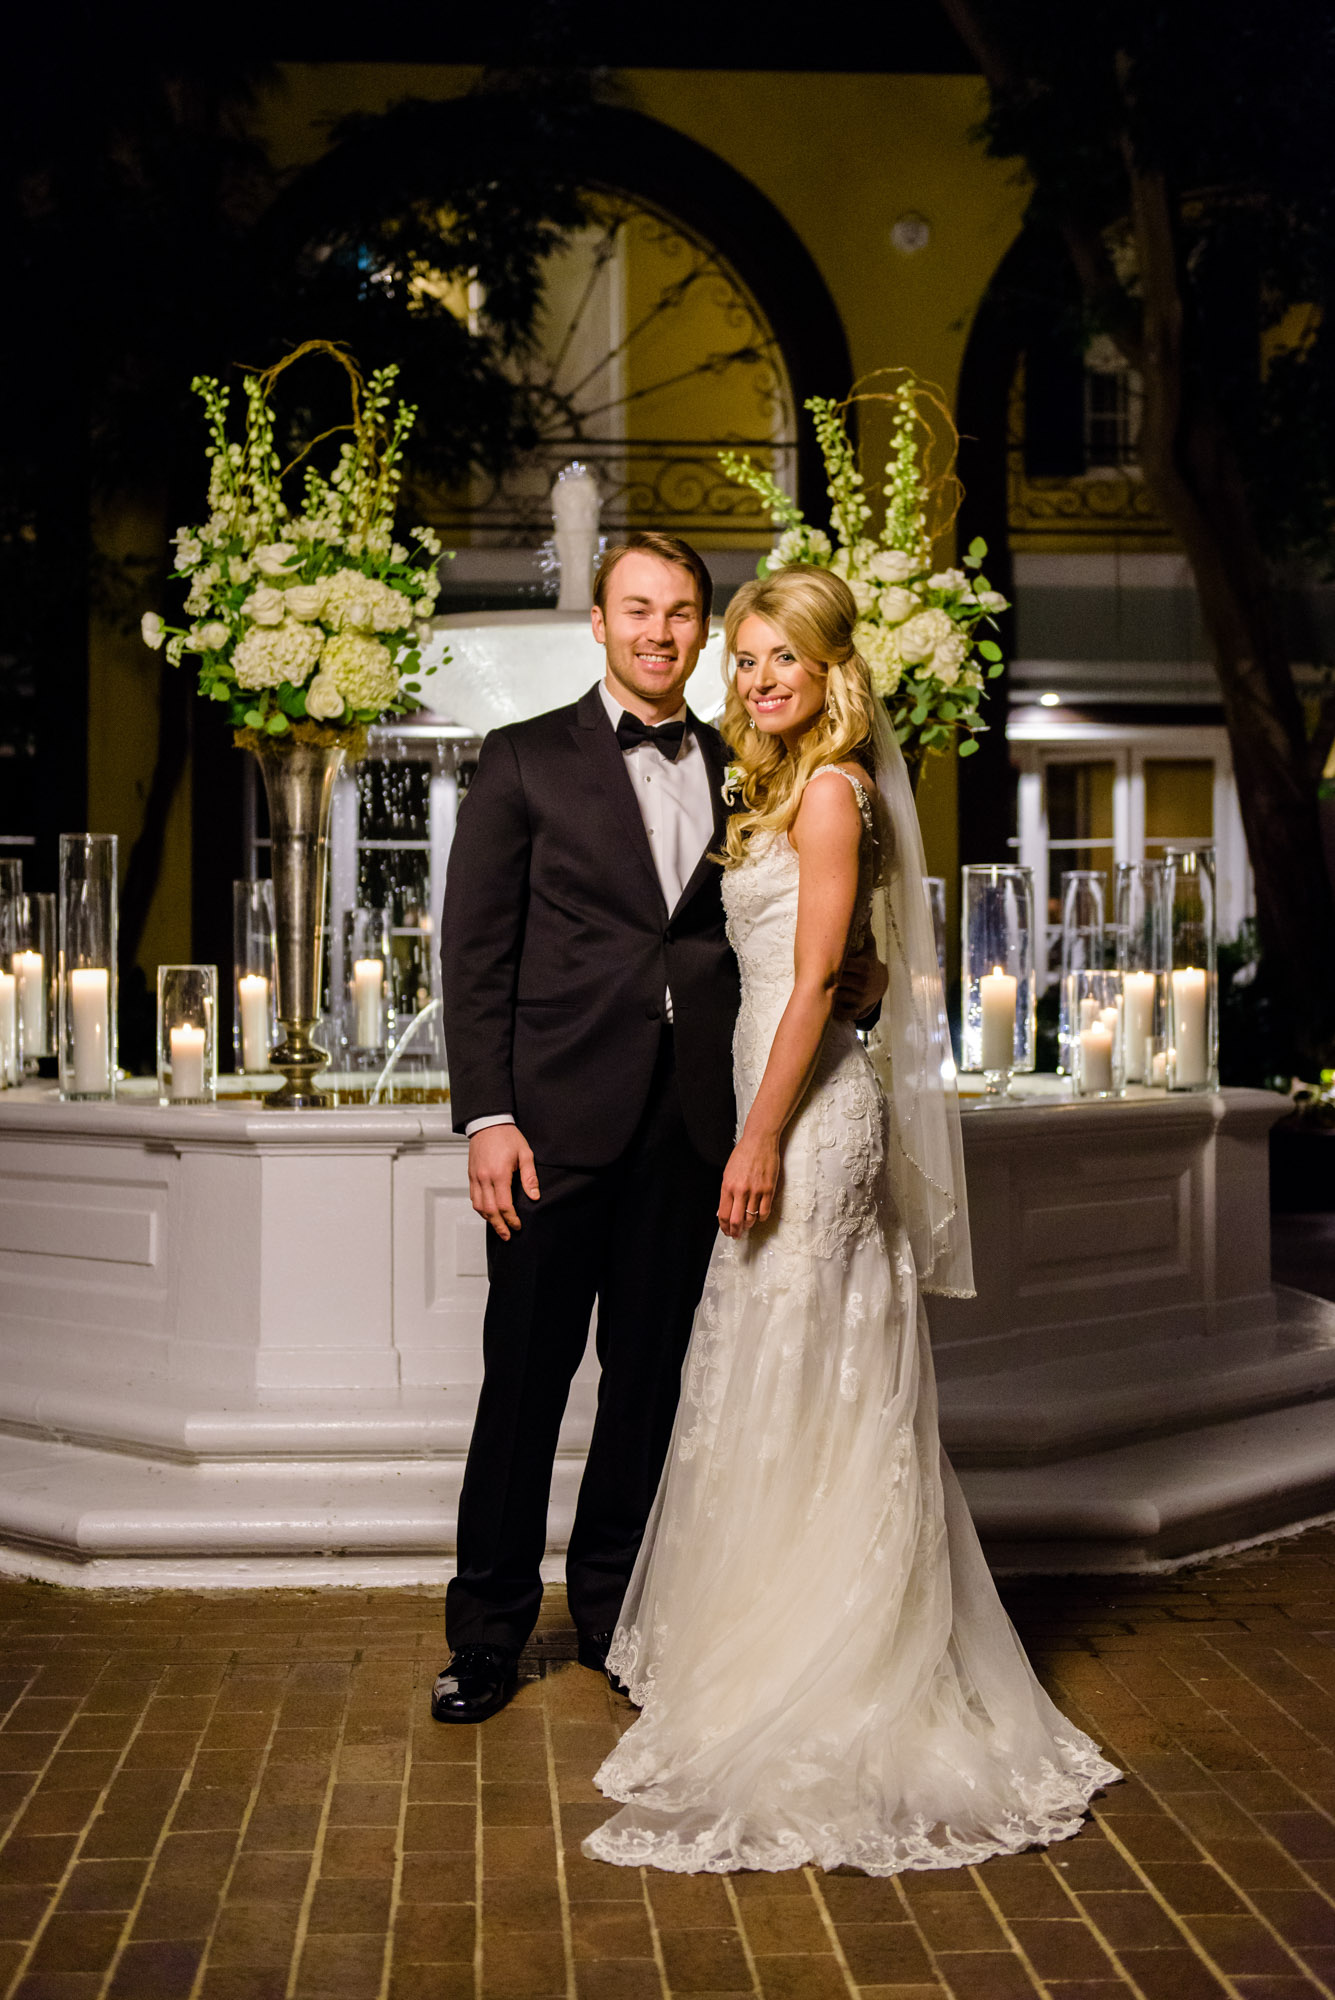 Bride and groom at New Orleans' Hotel Mazarin